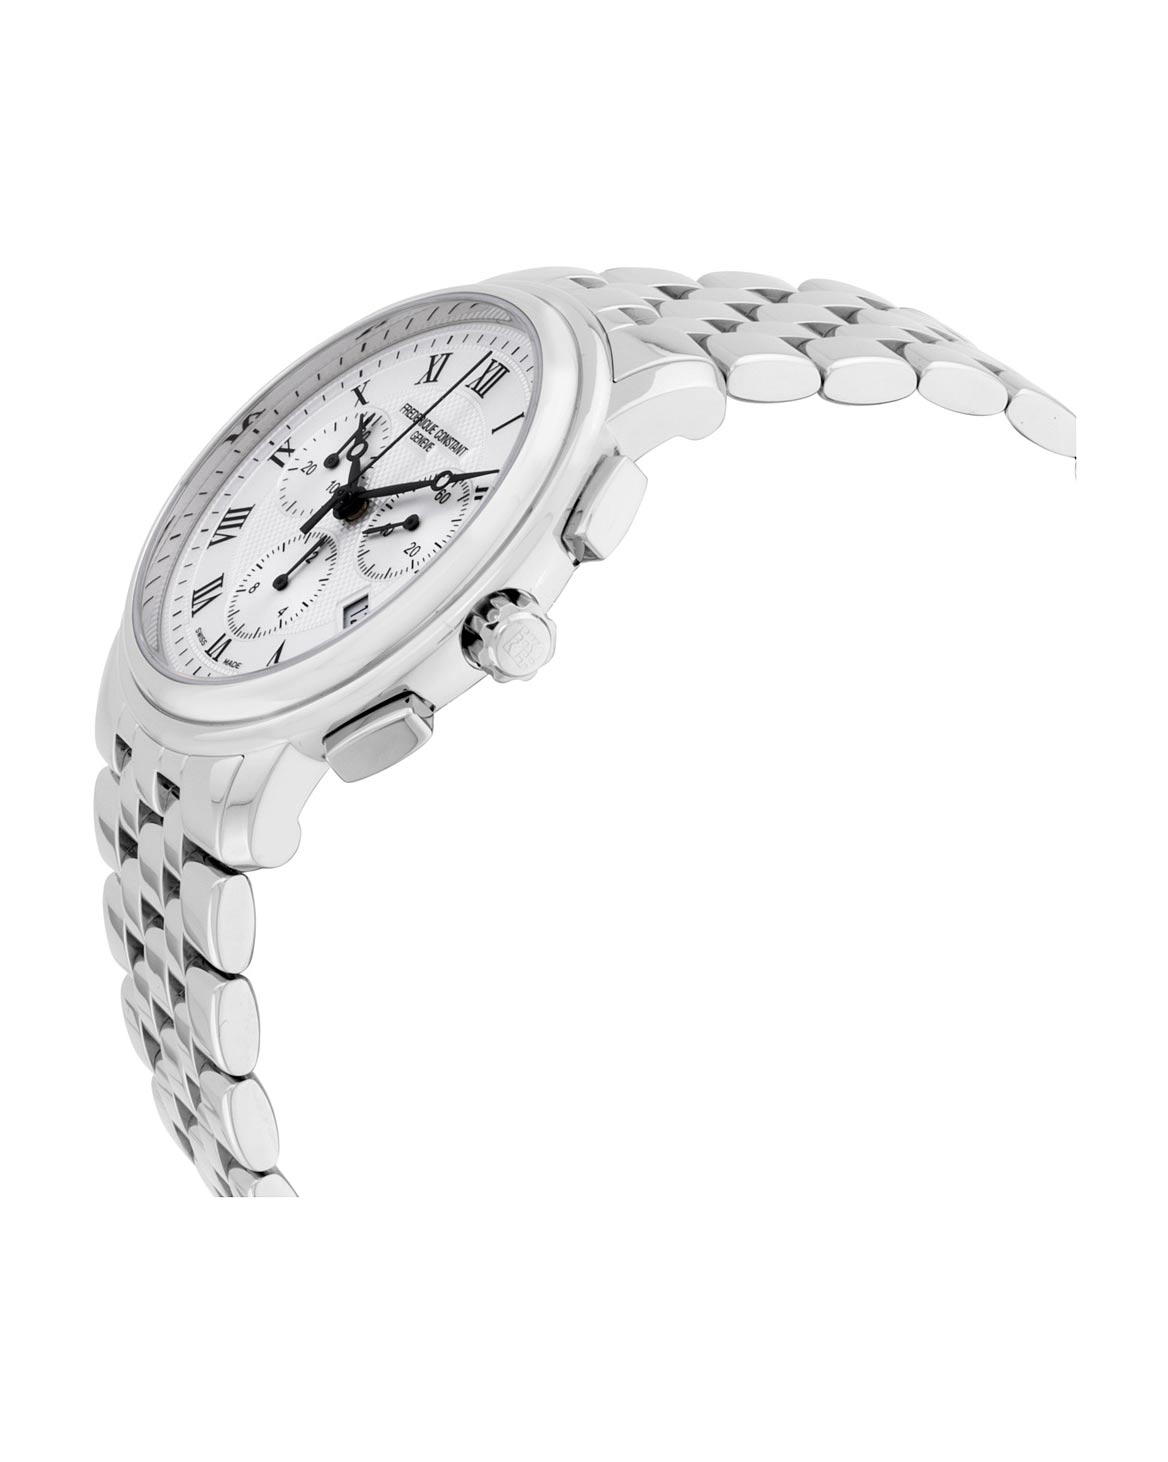 Frederique Constant Silver Dial Stainless Steel Men's Watch